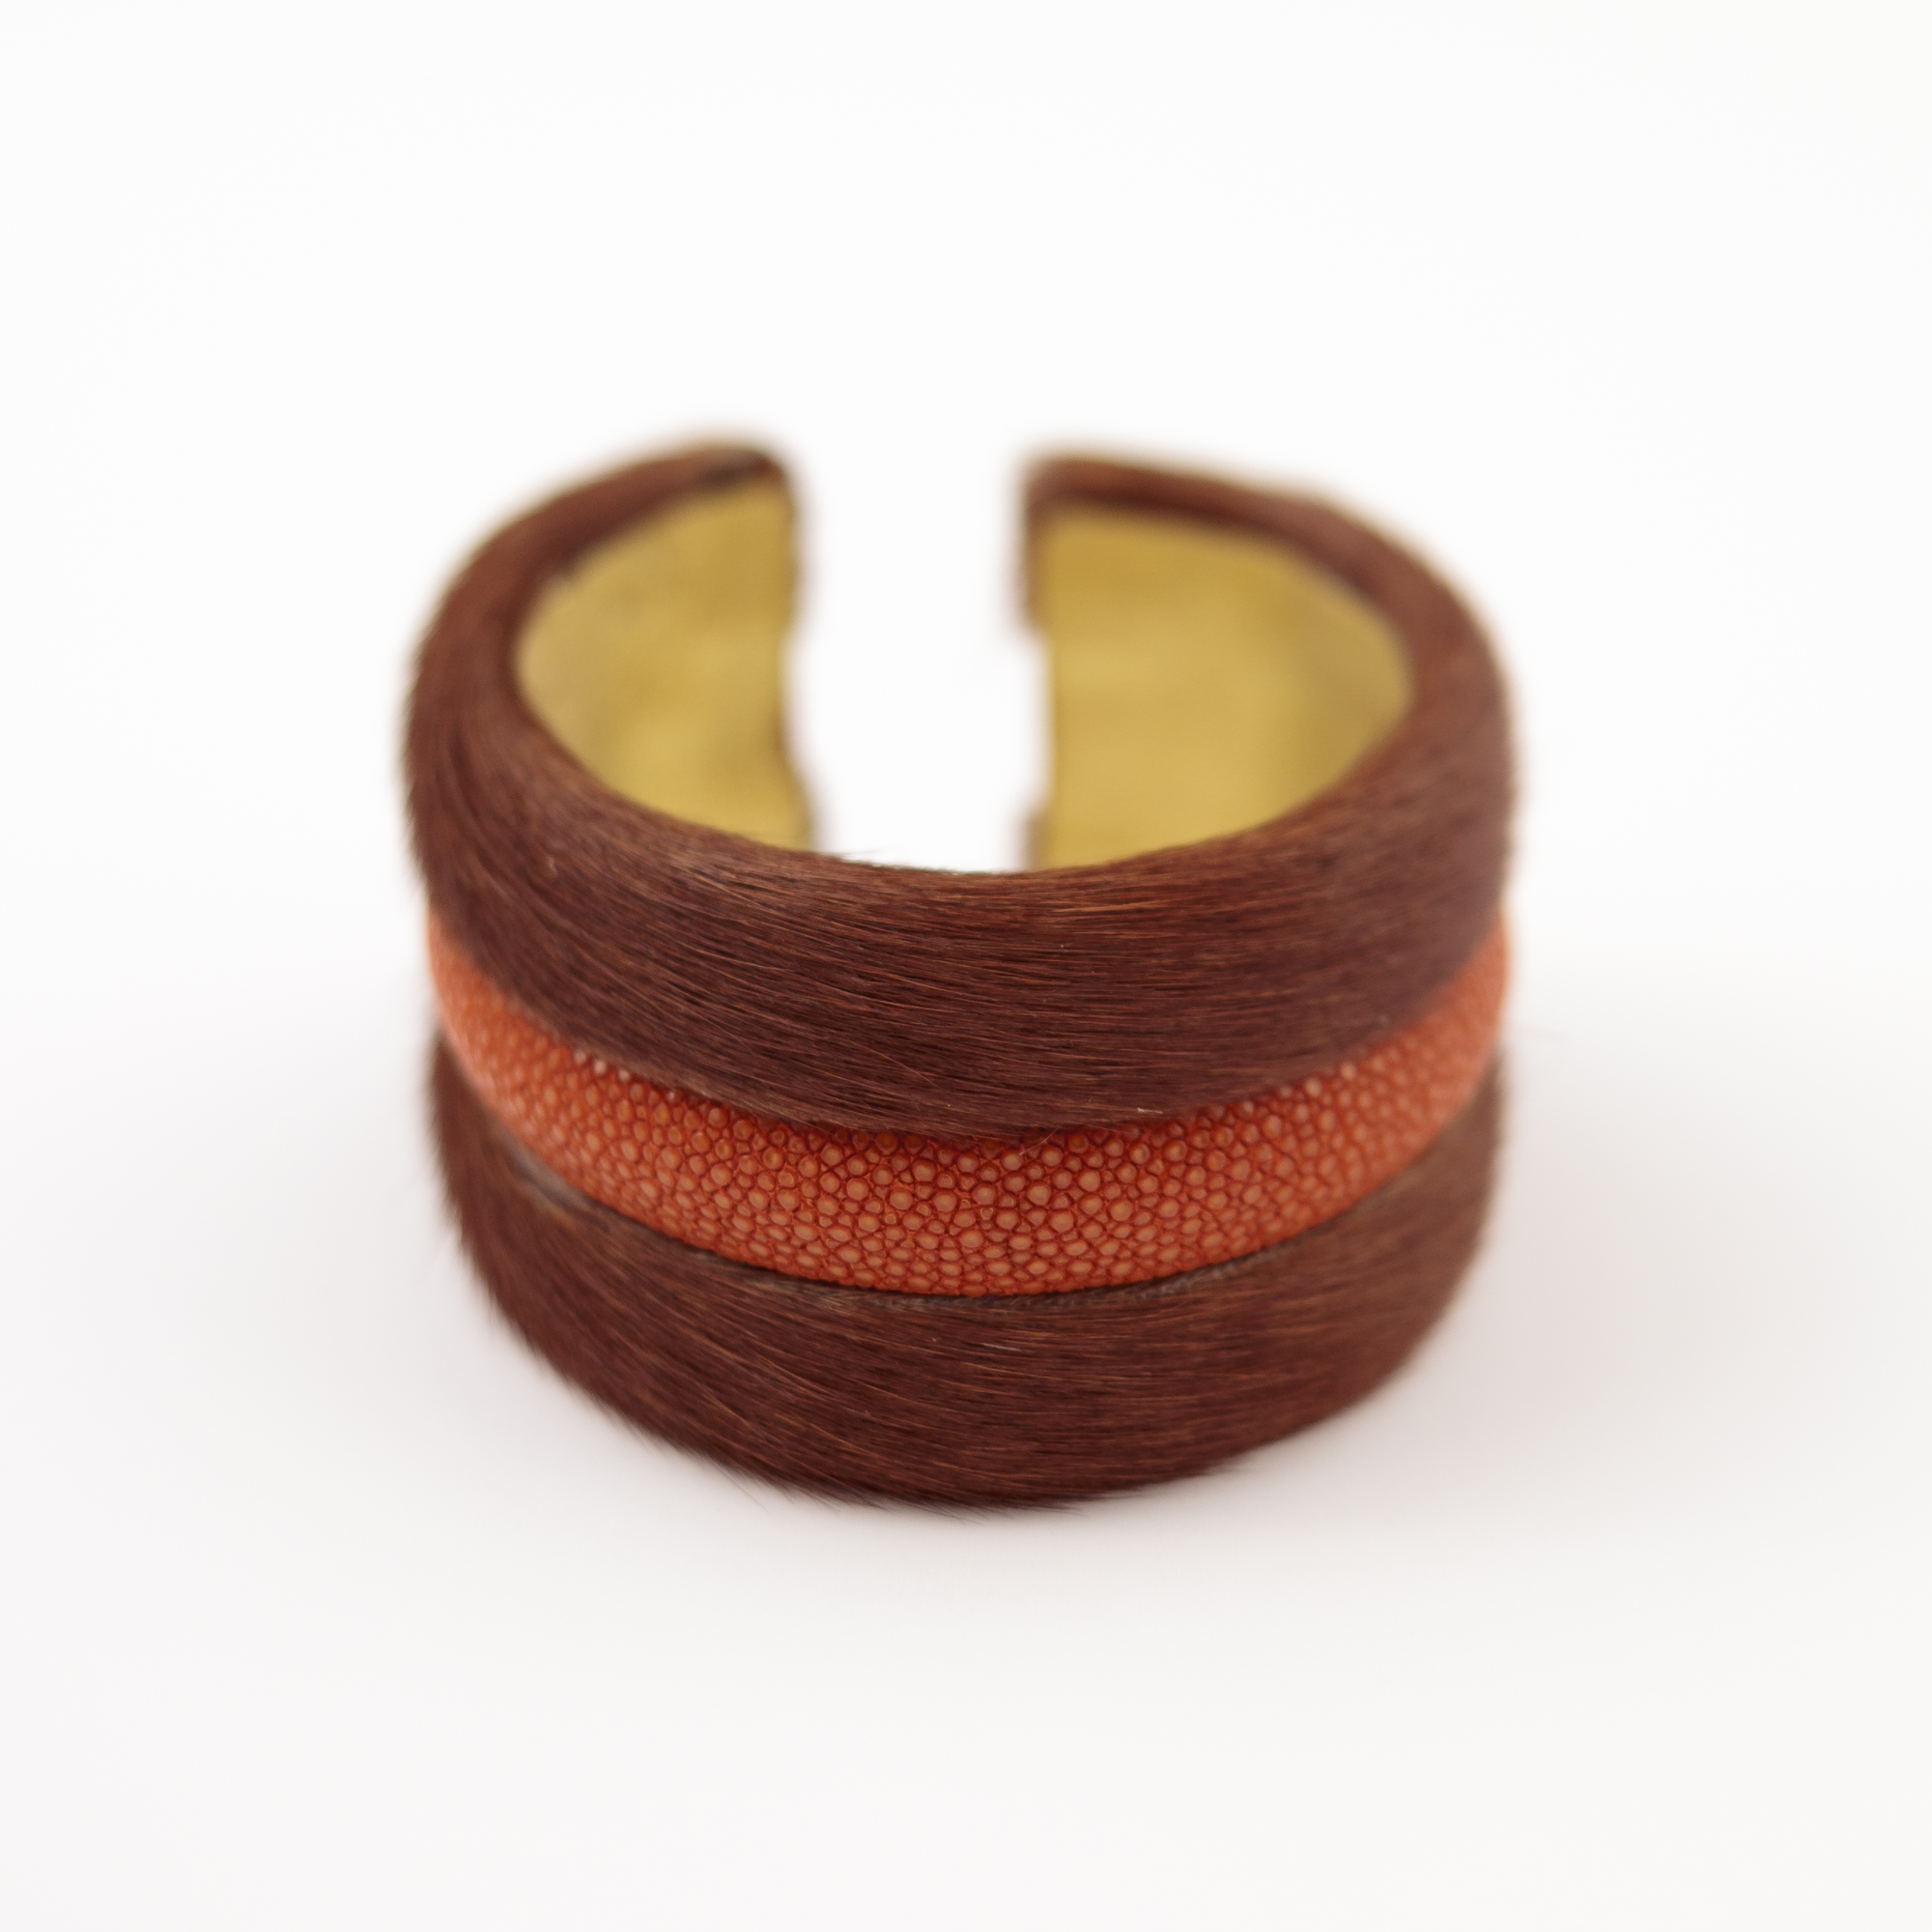 tresor-by-flore-galuchat-bracelet-poilu-marron-orange